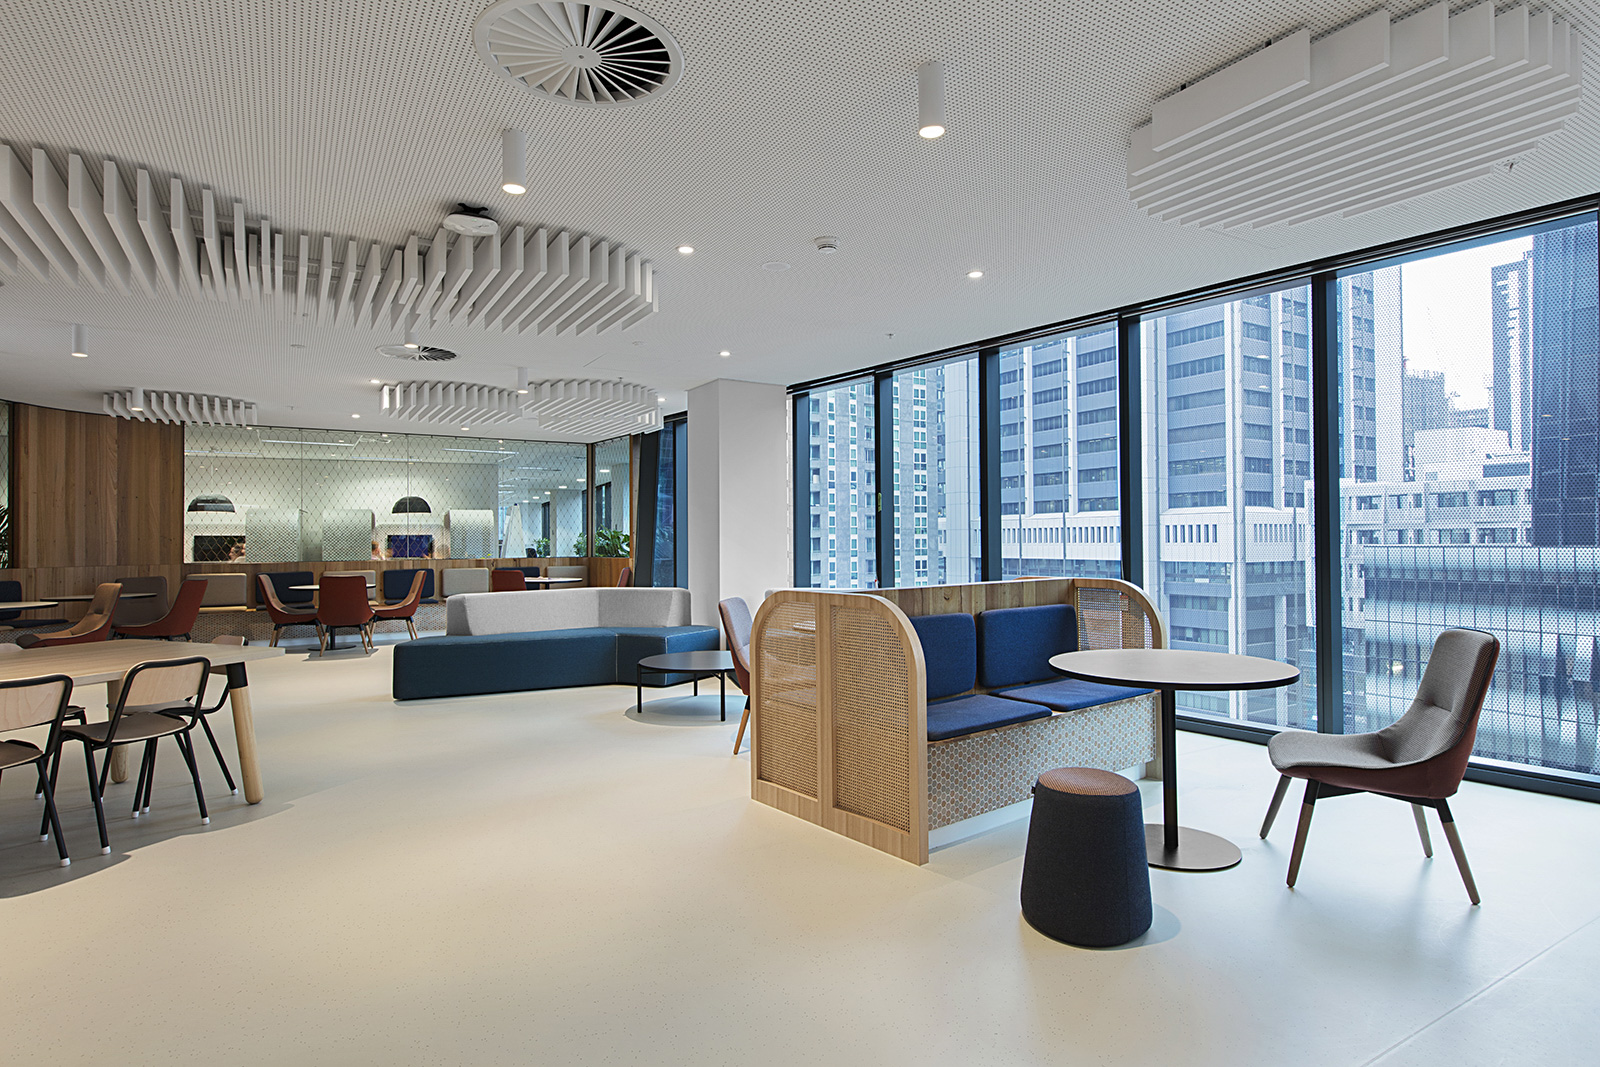 The WorkSafe office fit out by ISM Interiors featuring custom joinery and curved furniture.